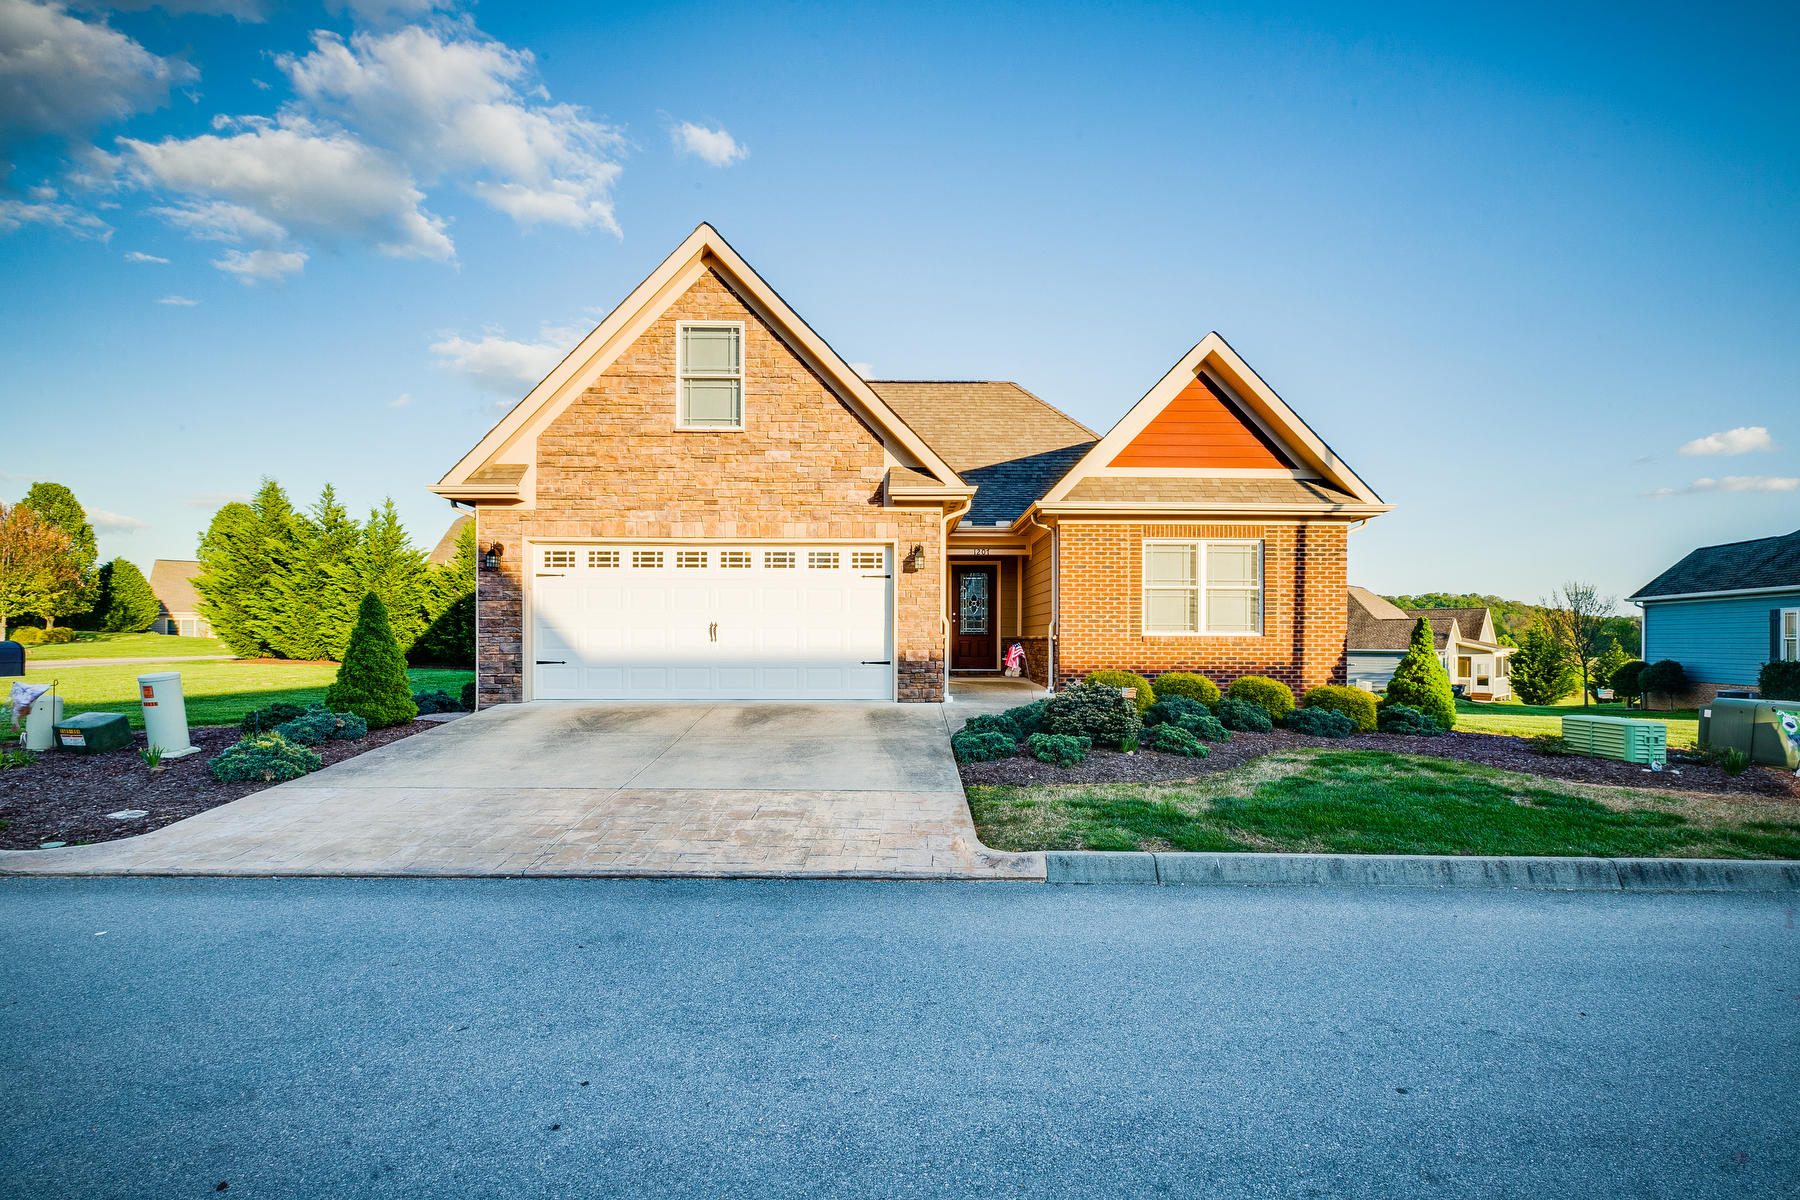 1207 Tuscany Way, Kingsport, Tennessee 37664, 3 Bedrooms Bedrooms, ,2 BathroomsBathrooms,Single Family,For Sale,1207 Tuscany Way,2,9921216